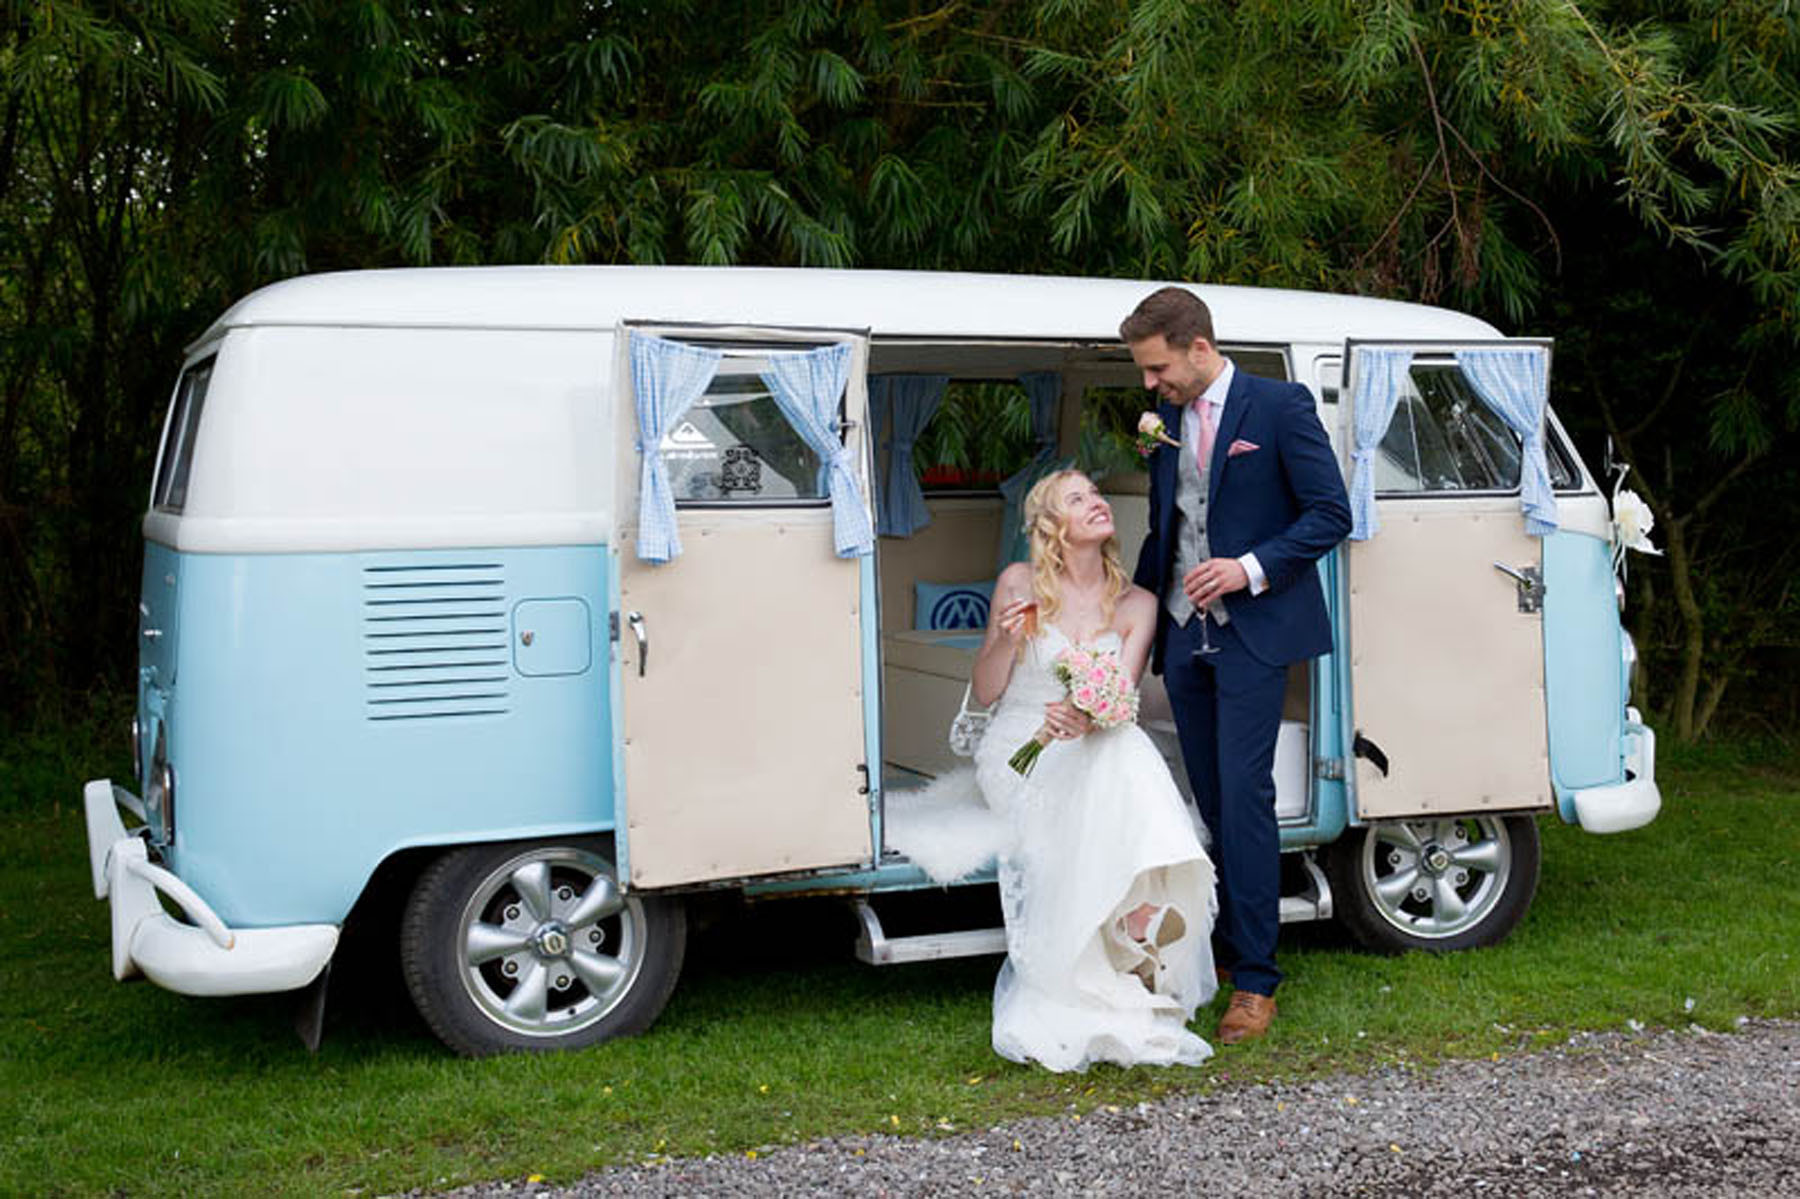 Yorkshire campervan for a Wedding car